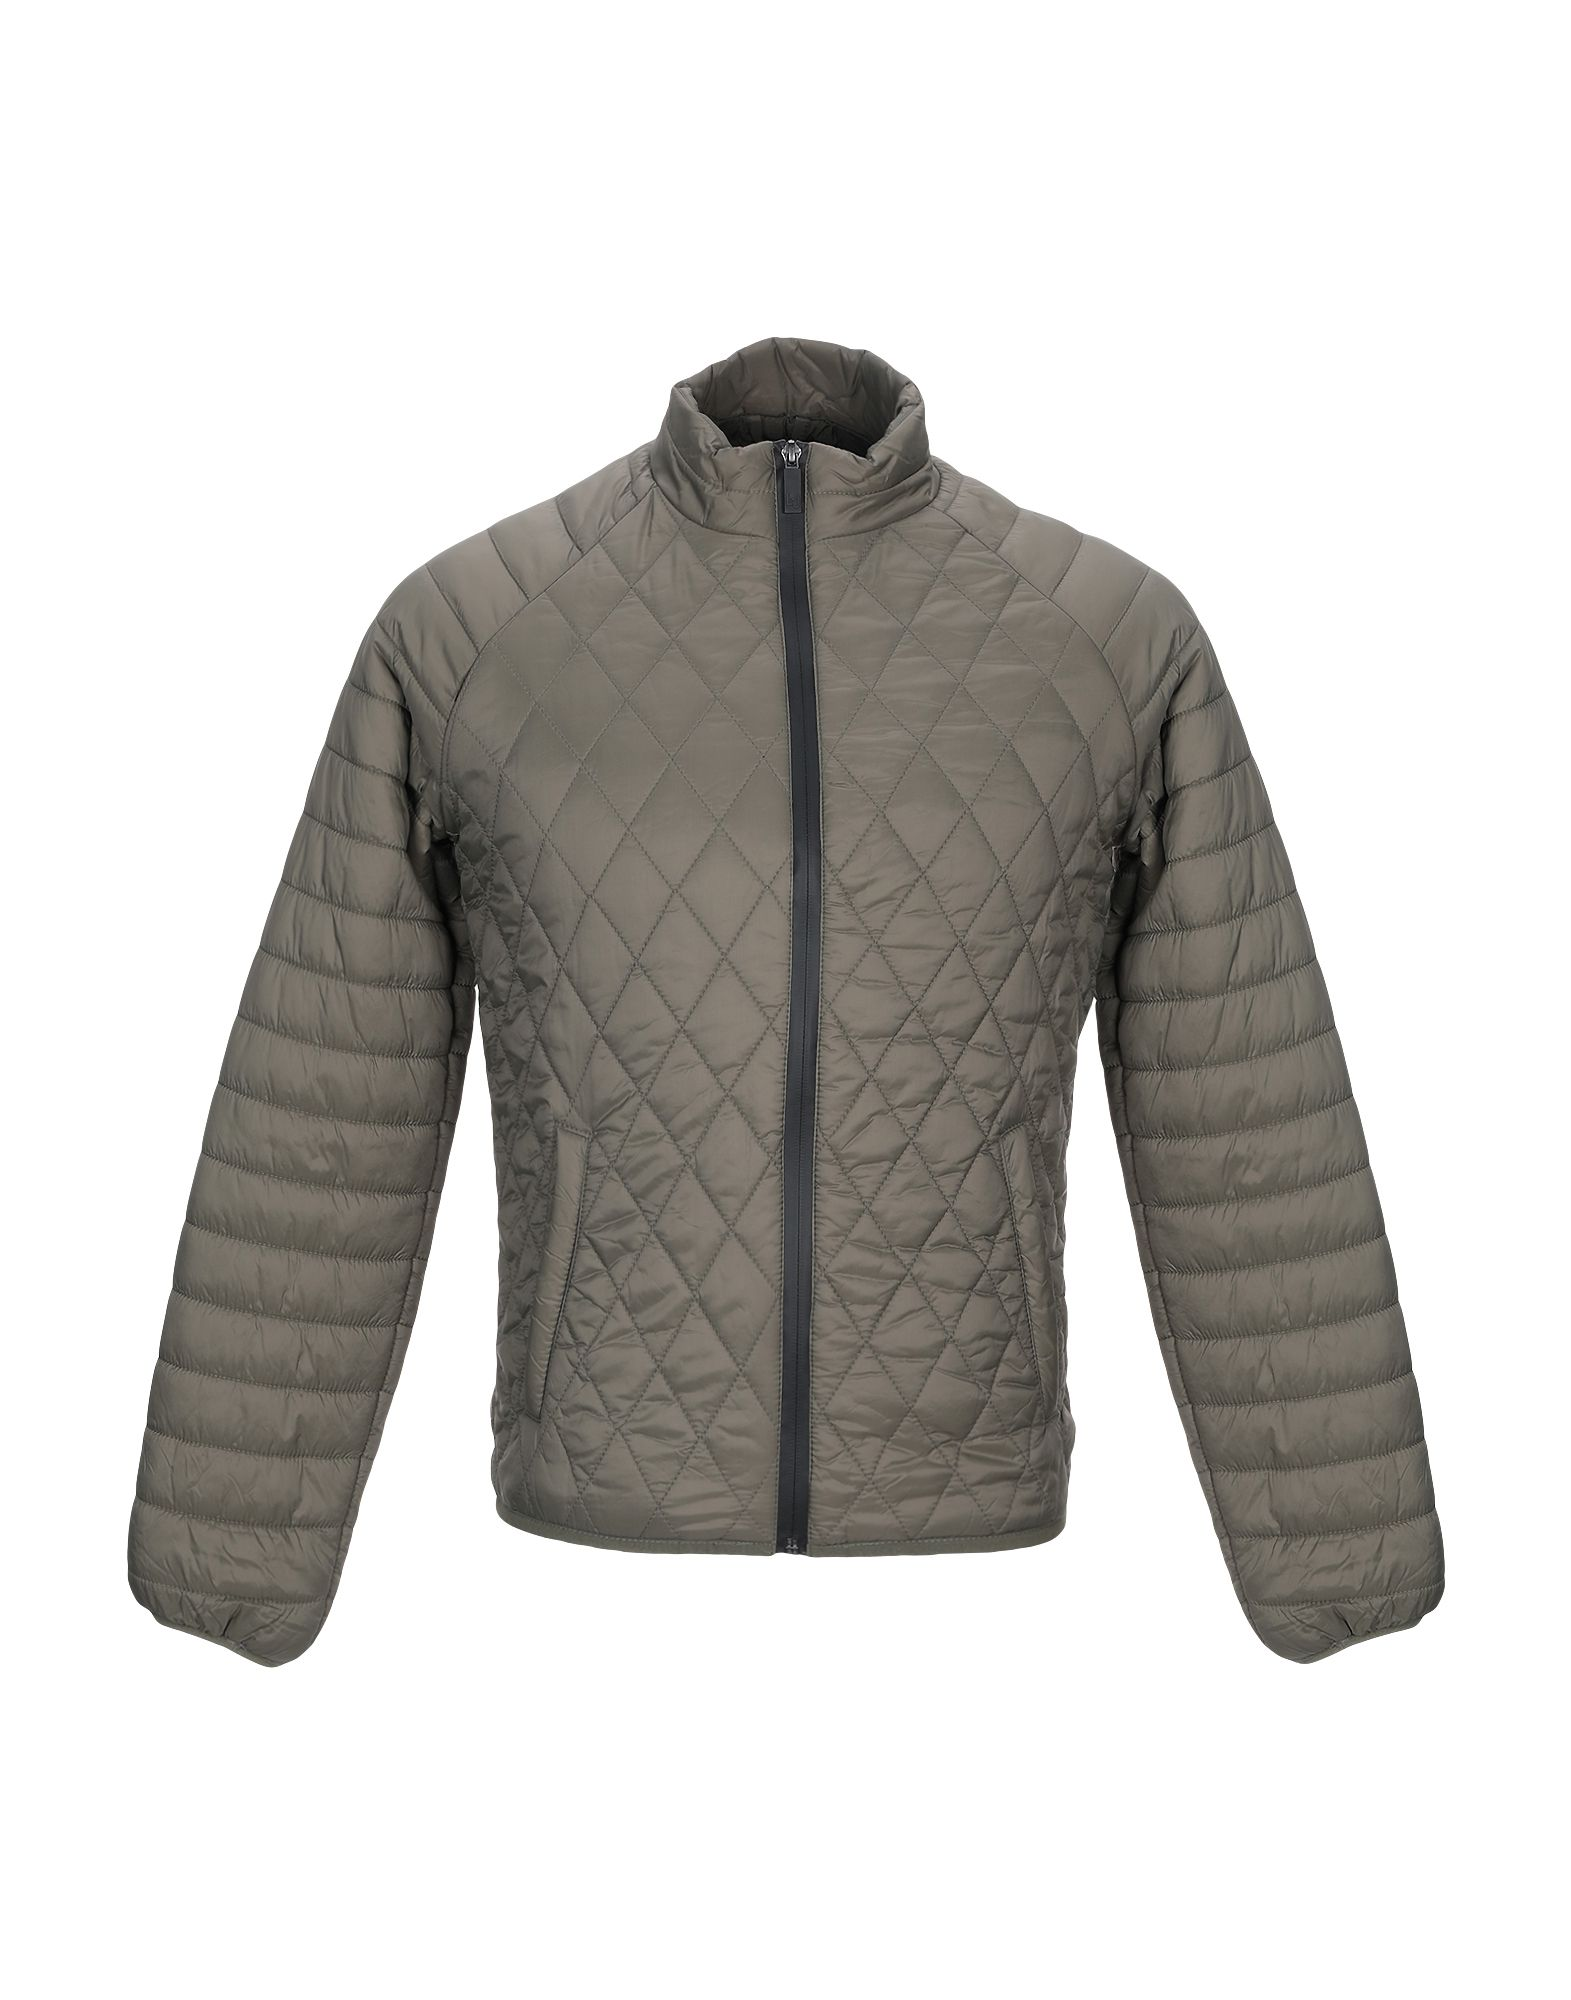 LIU JO MAN Synthetic Down Jackets - Item 41827278